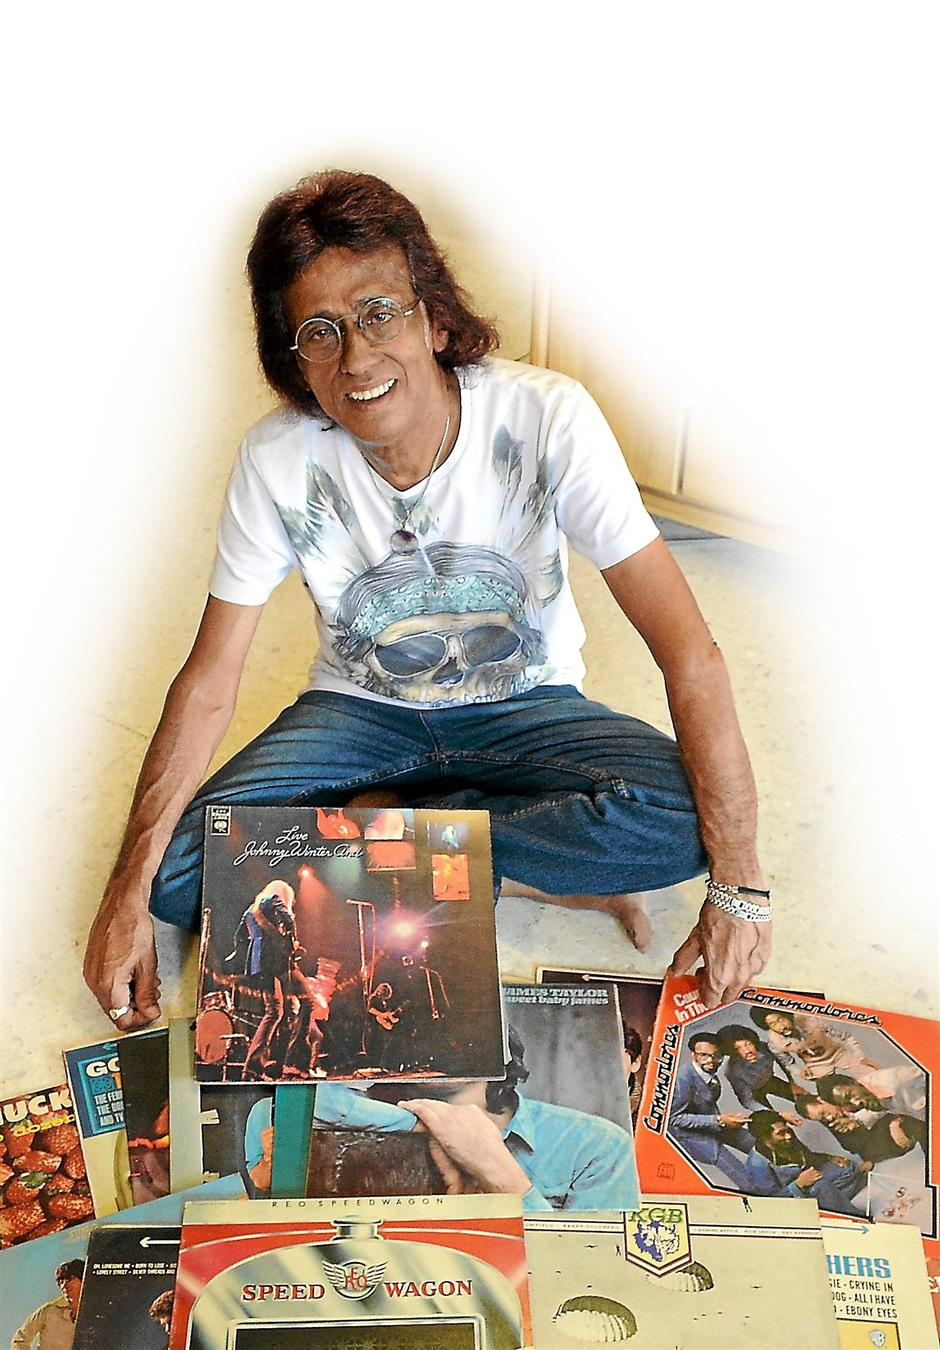 Richard Joseph with his collection of vinyl records.